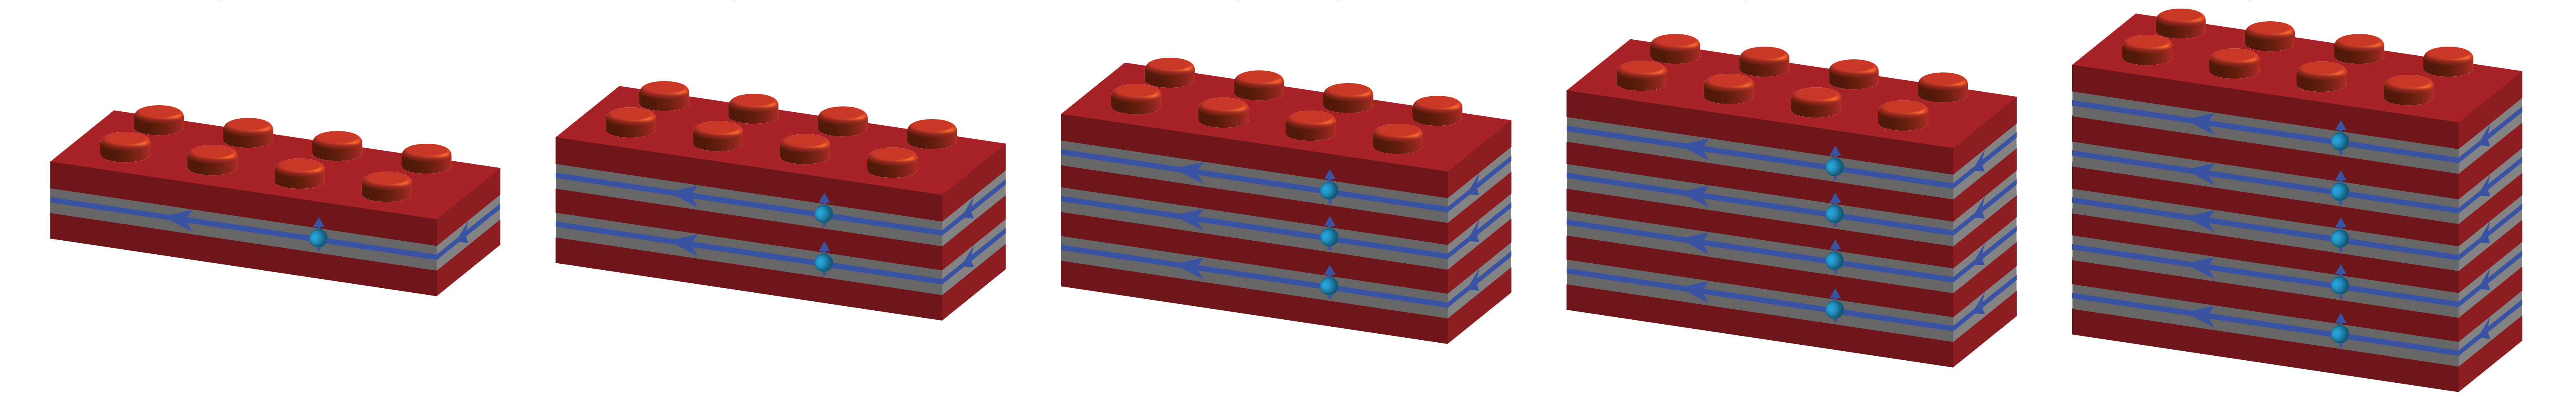 QAH insulators as legos